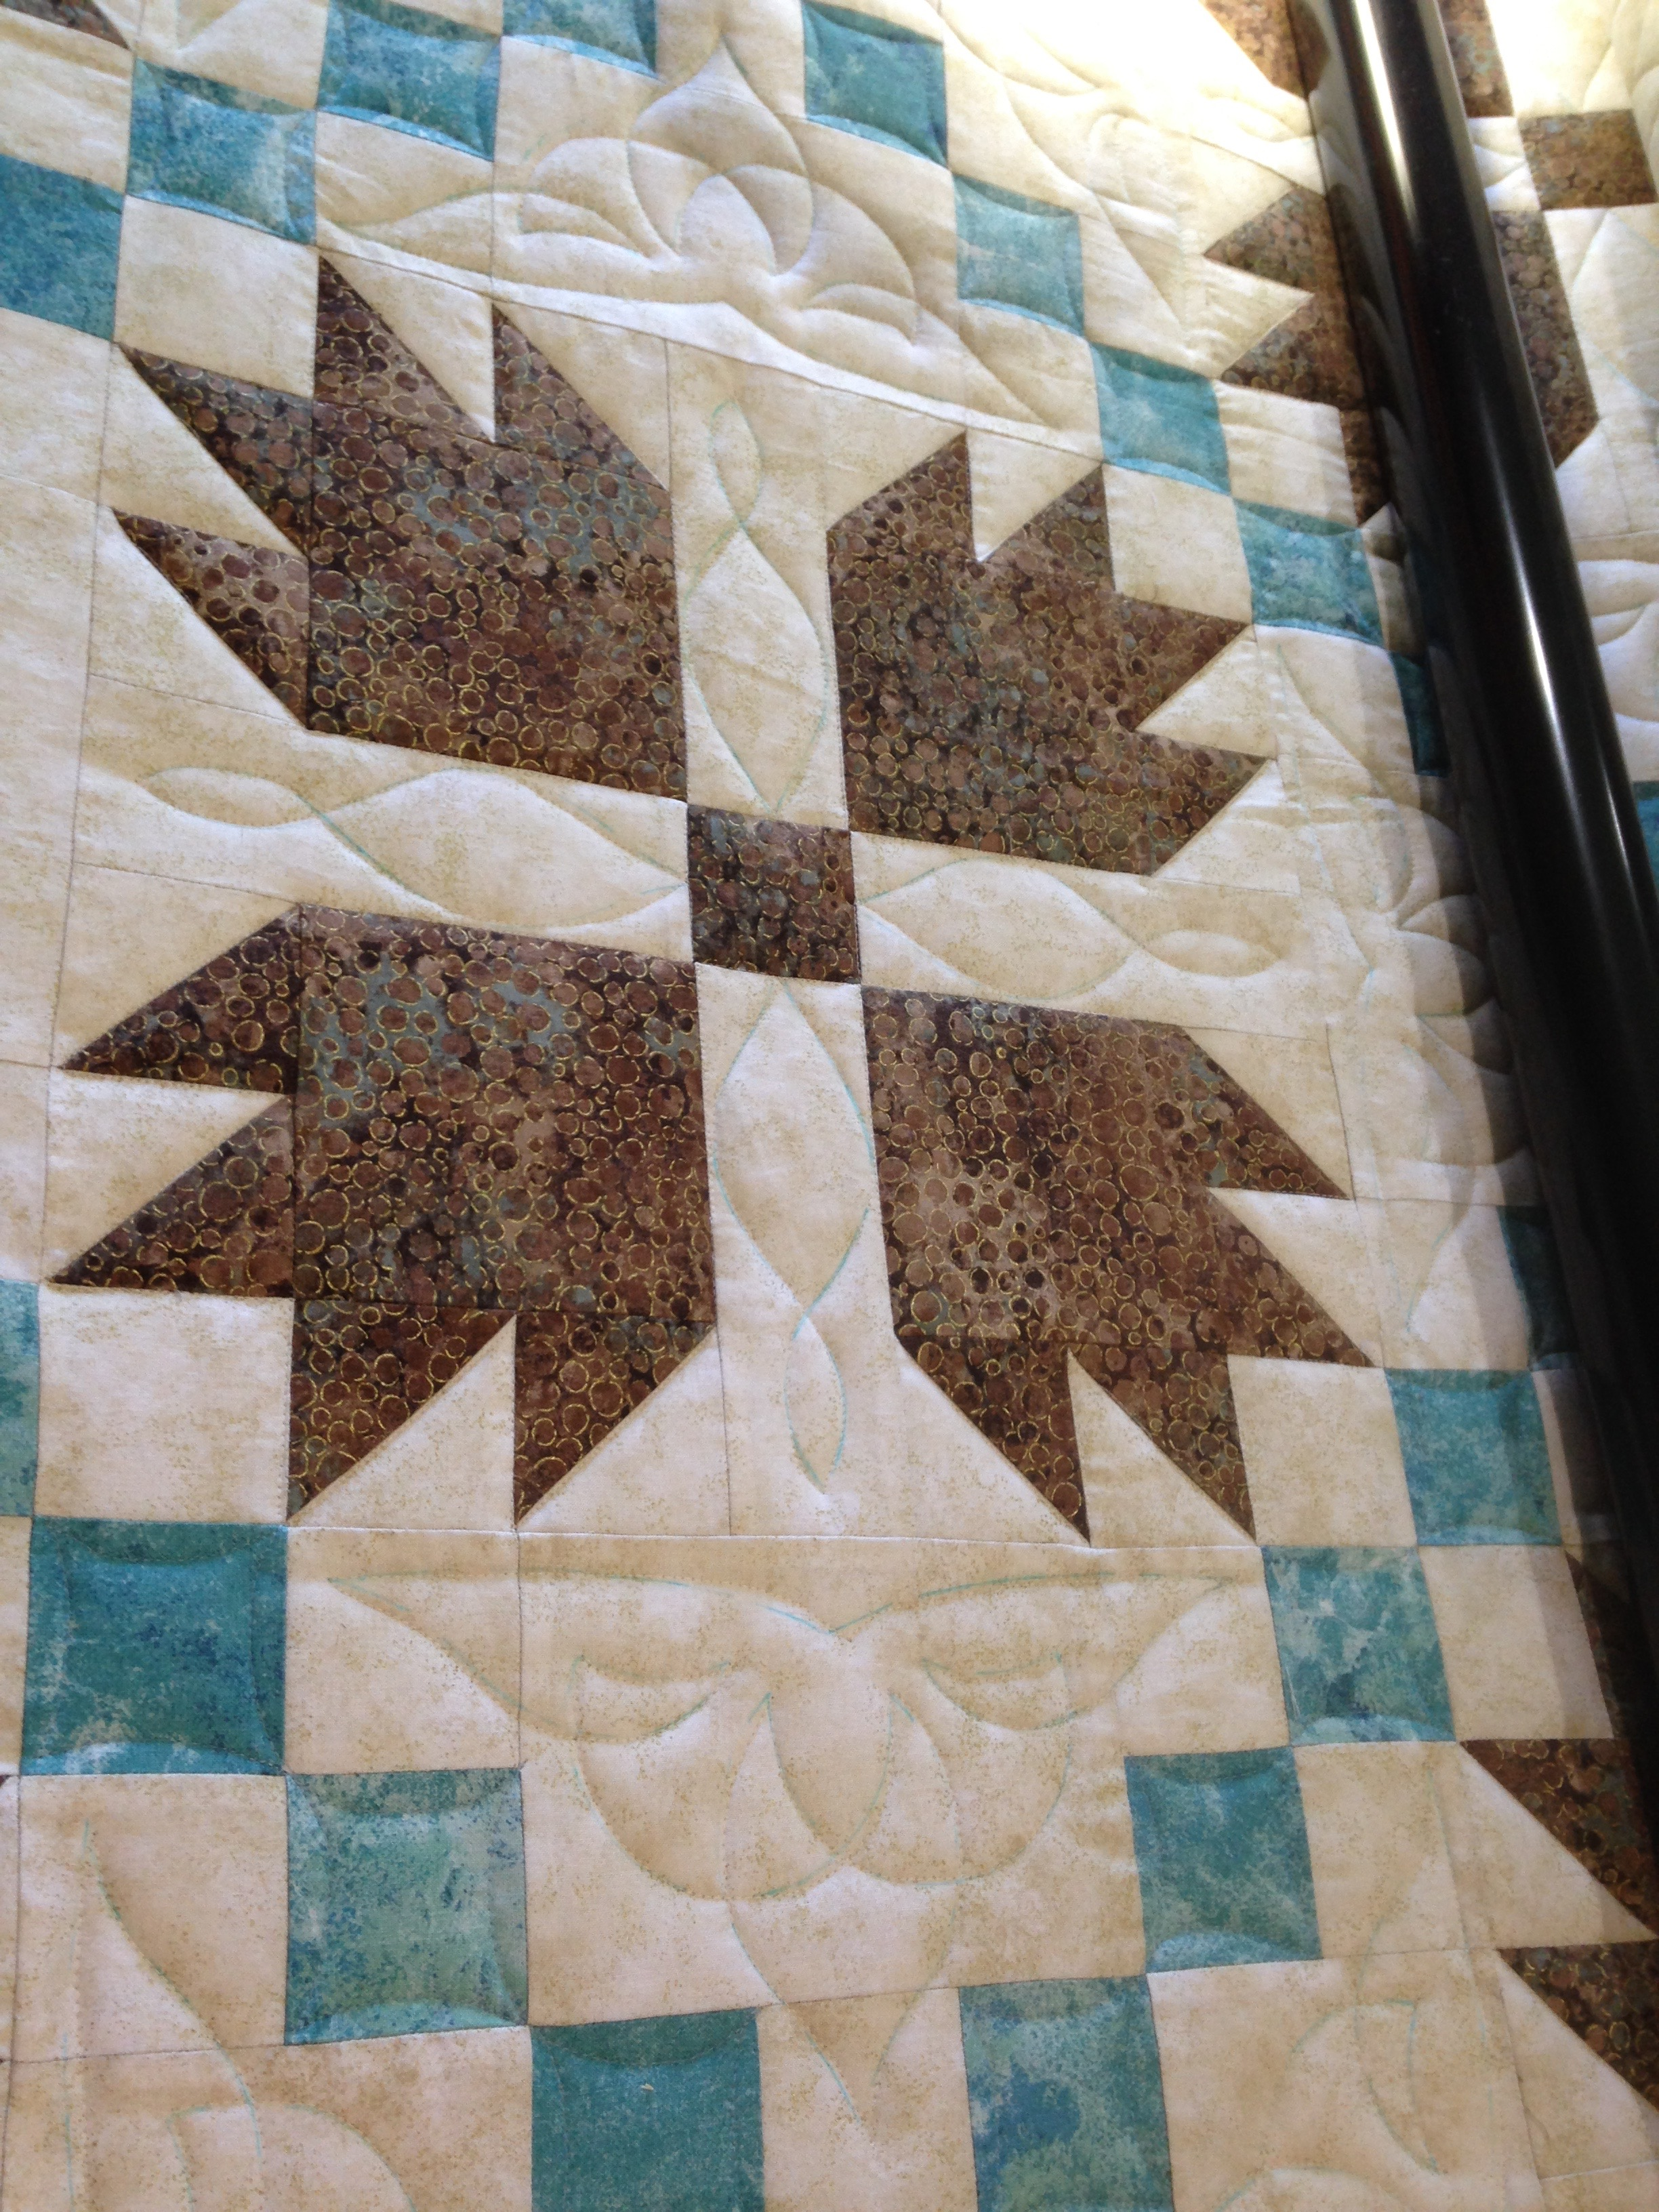 A customer quilt I have been working on for our Quilt Show in the fall.